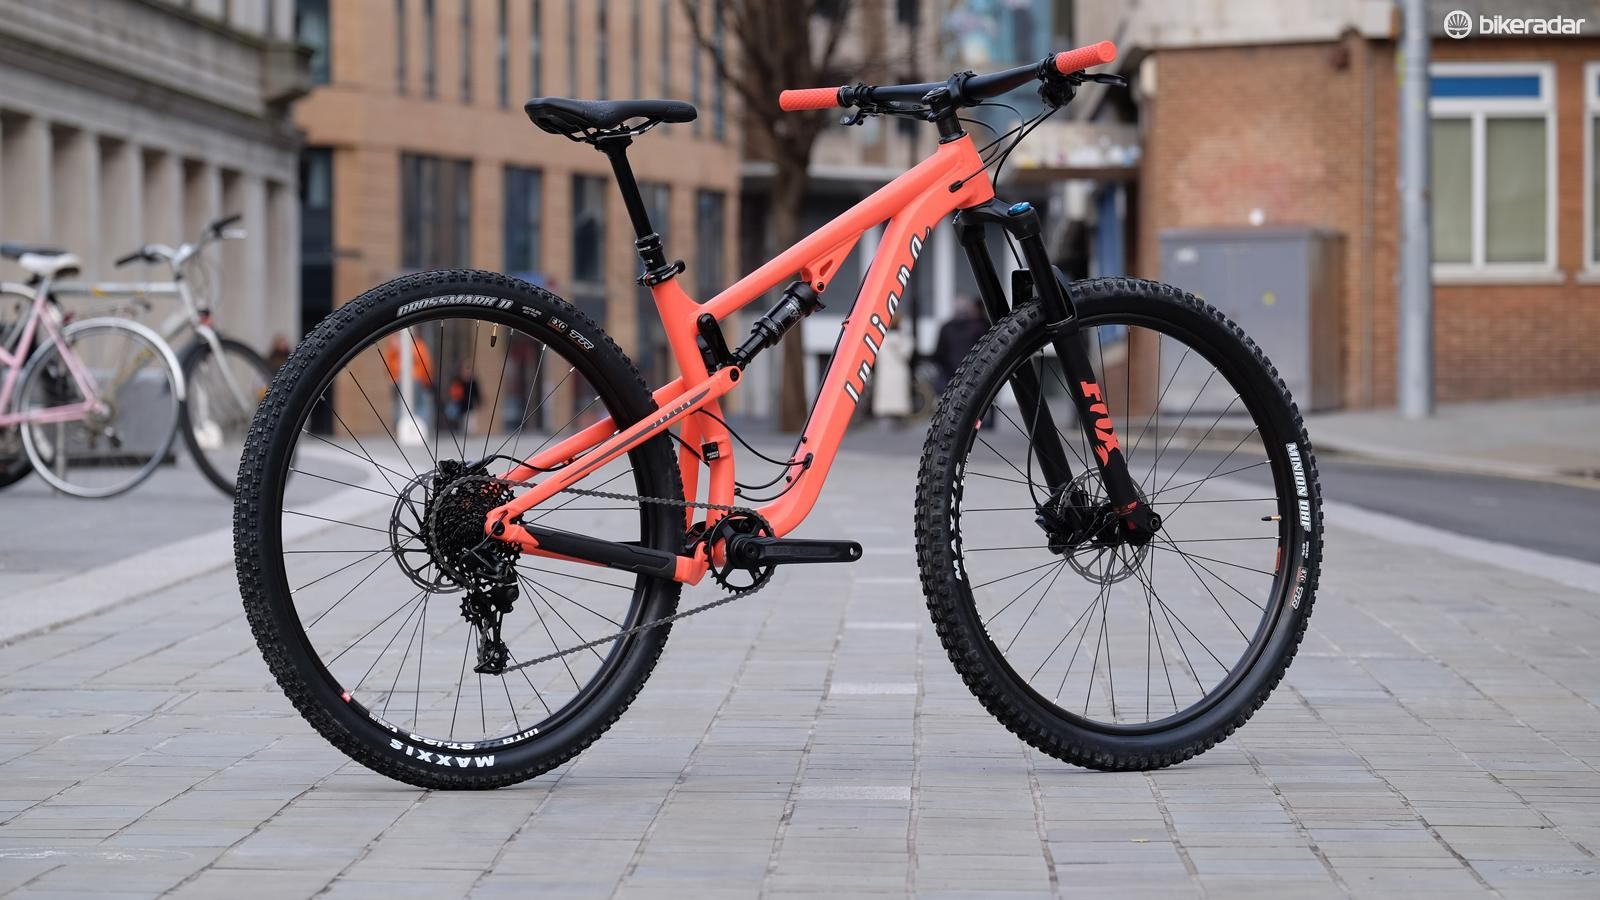 The alloy-framed Juliana Jopline R: capable, fun and winner of Women's Trail Bike of the Year 2018